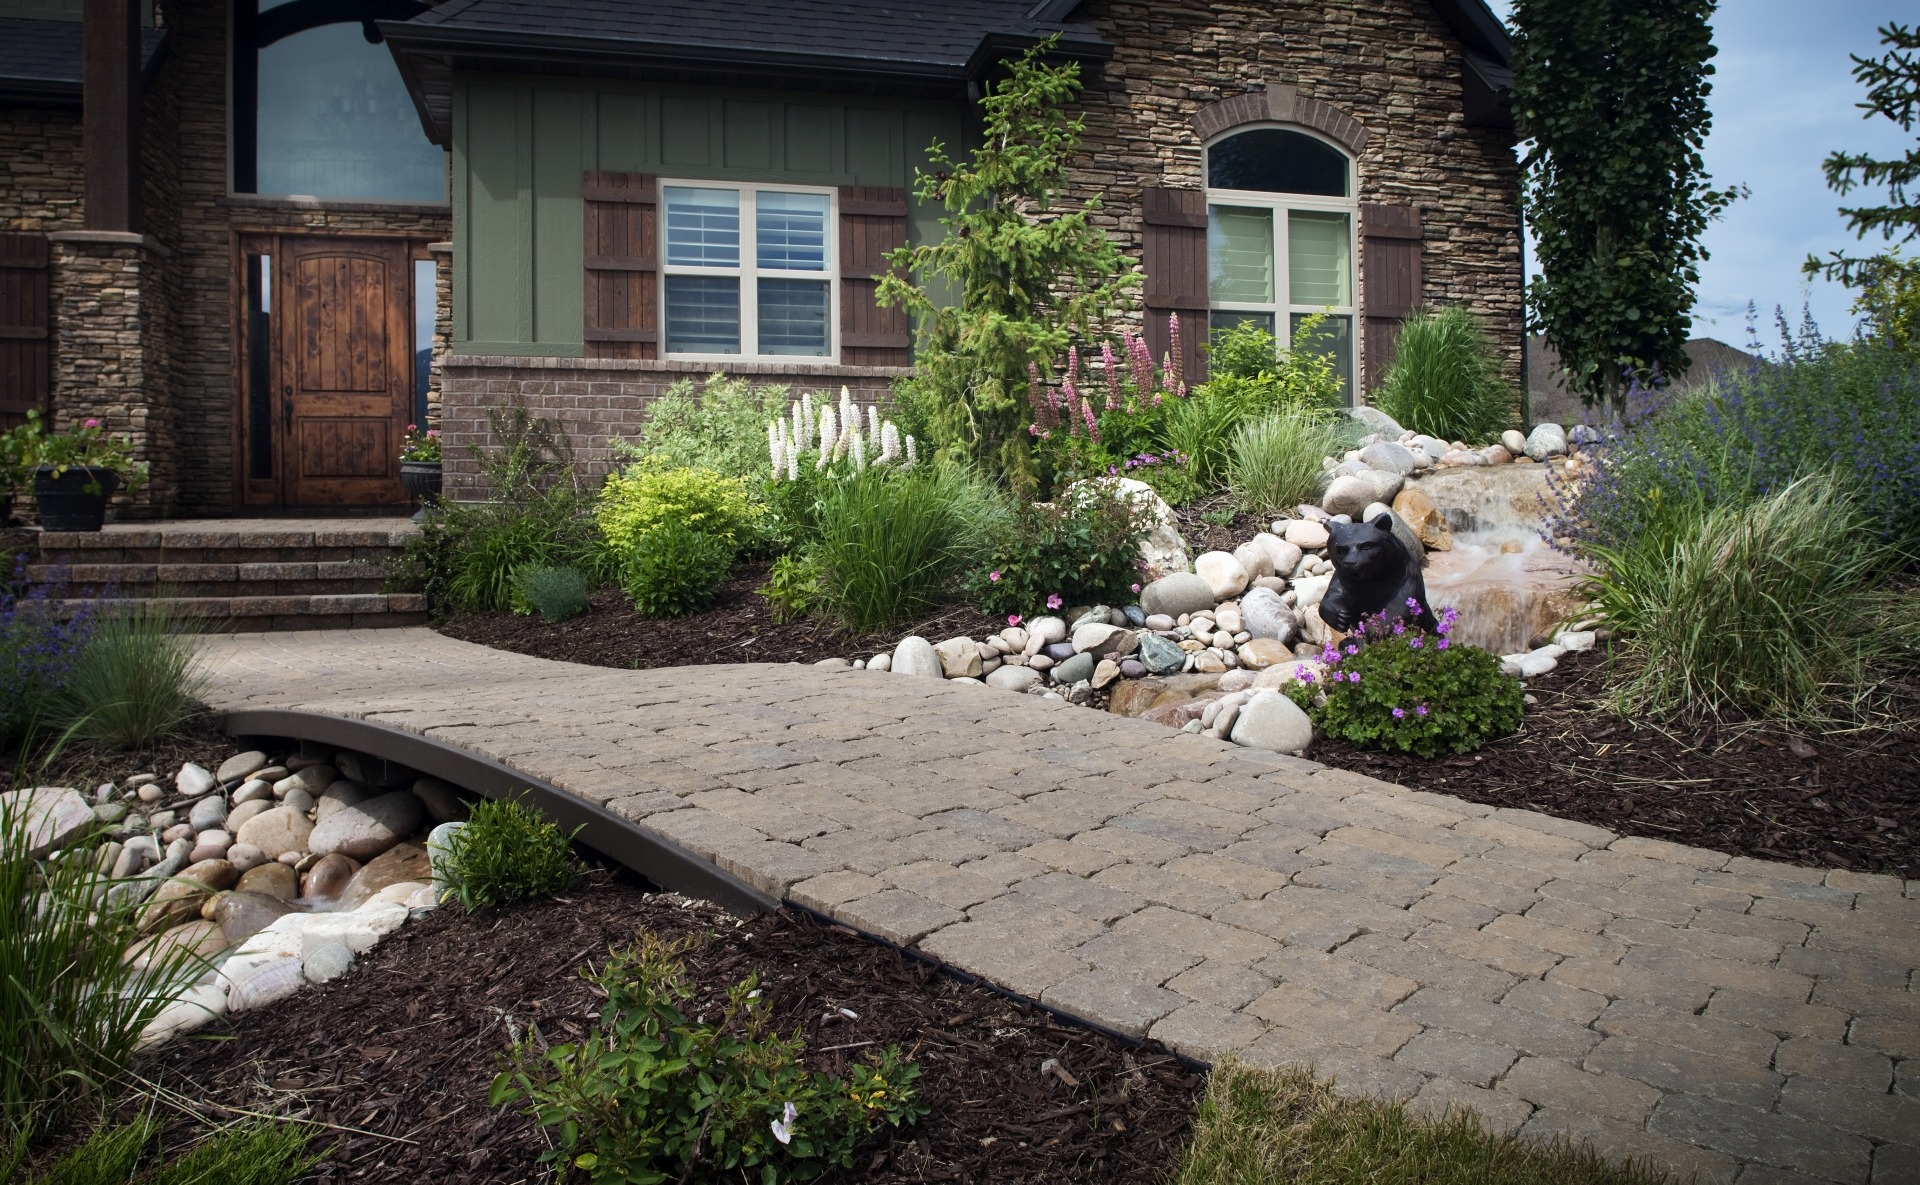 Paving Stone Walkway with Mulch